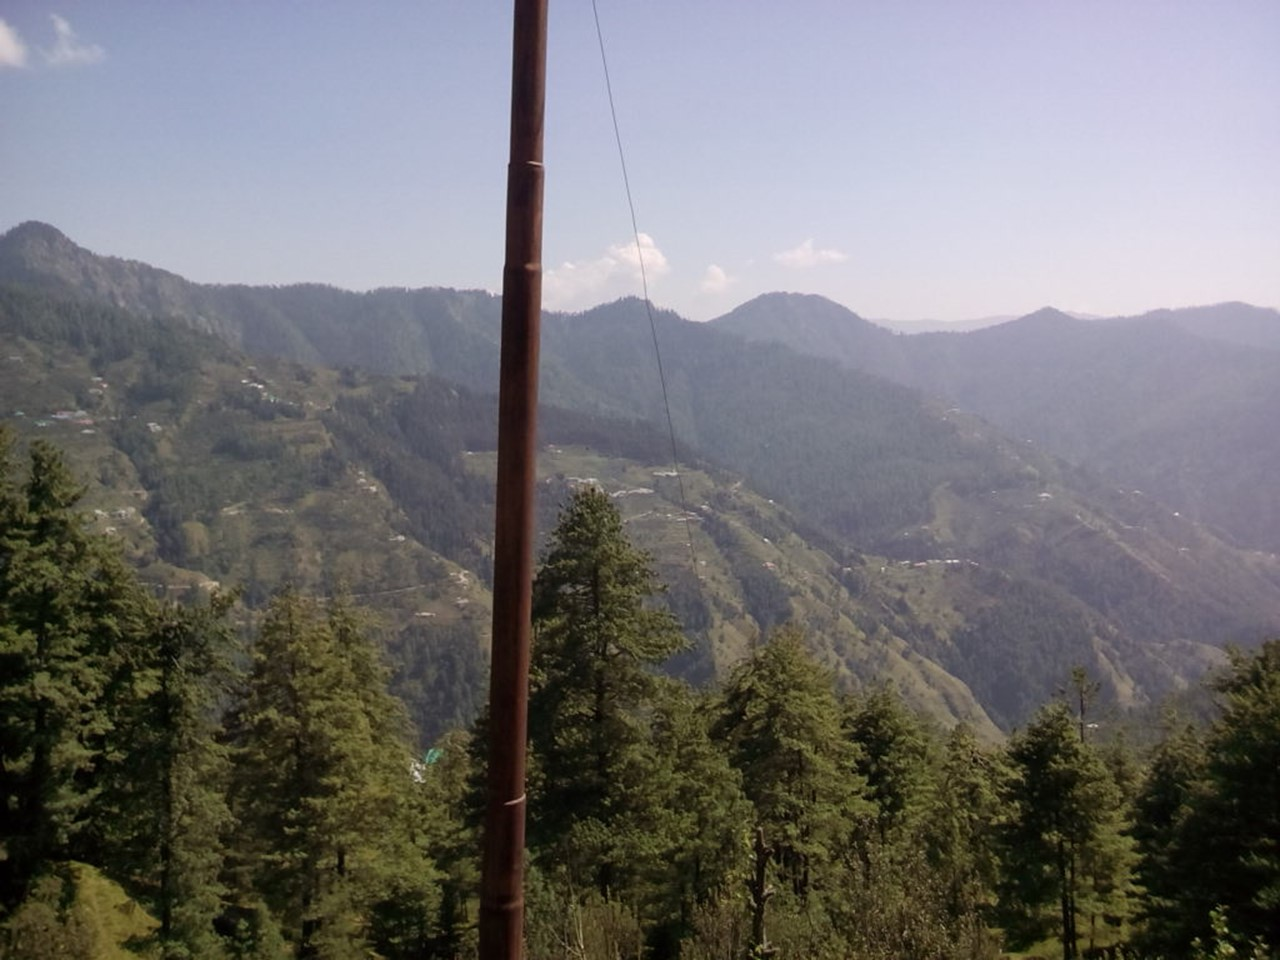 Trees with layers of mountains in the background